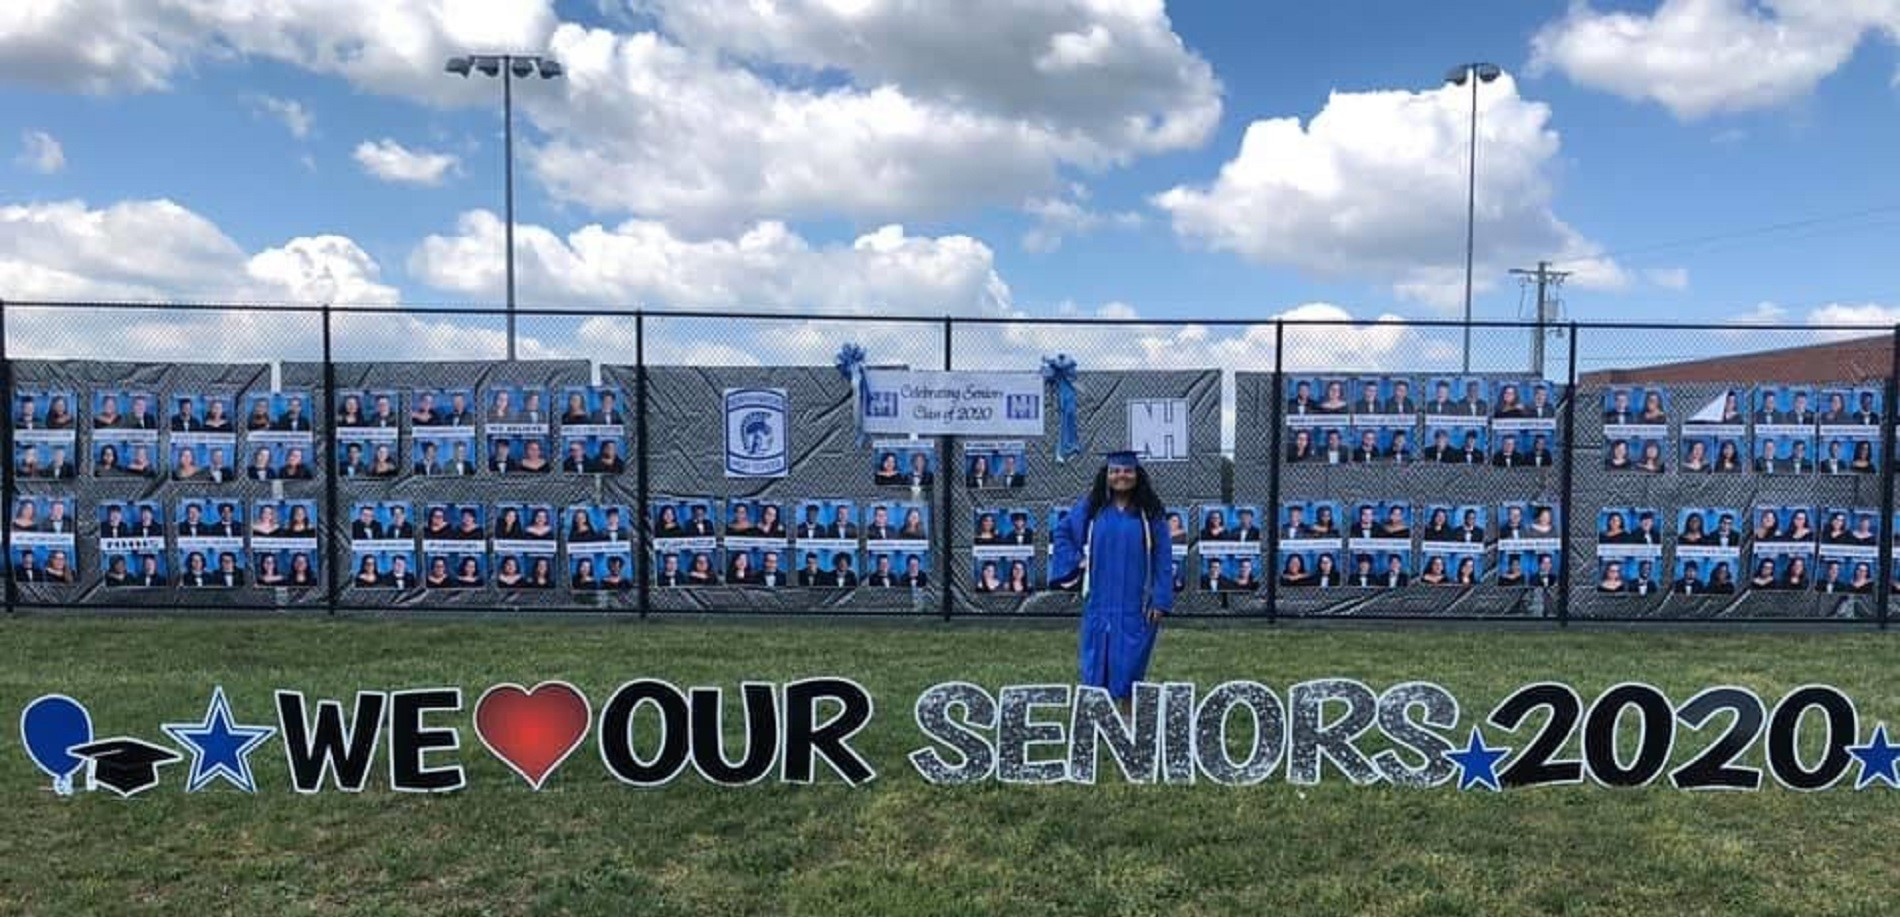 Our Wall of Seniors-Class of 2020!